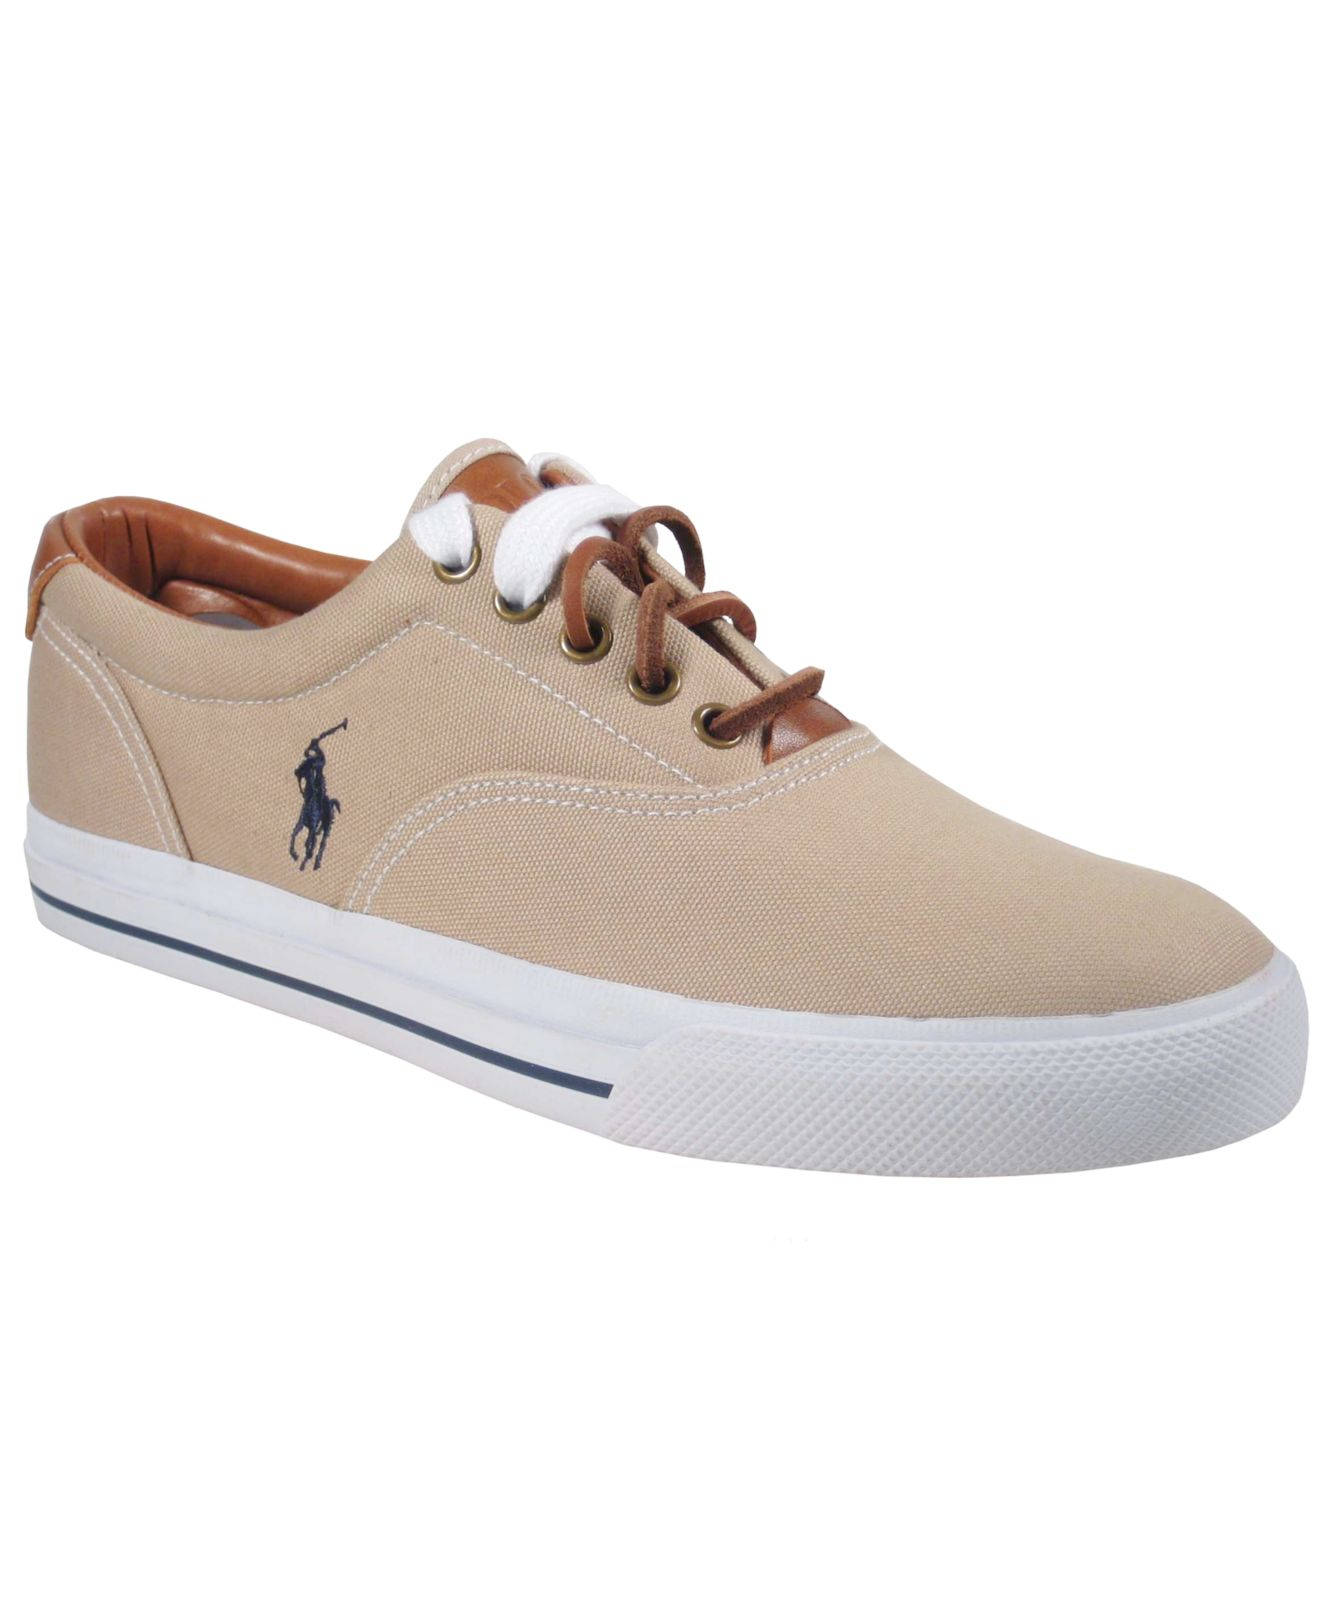 lyst polo ralph lauren vaughn canvas sneakers in natural. Black Bedroom Furniture Sets. Home Design Ideas